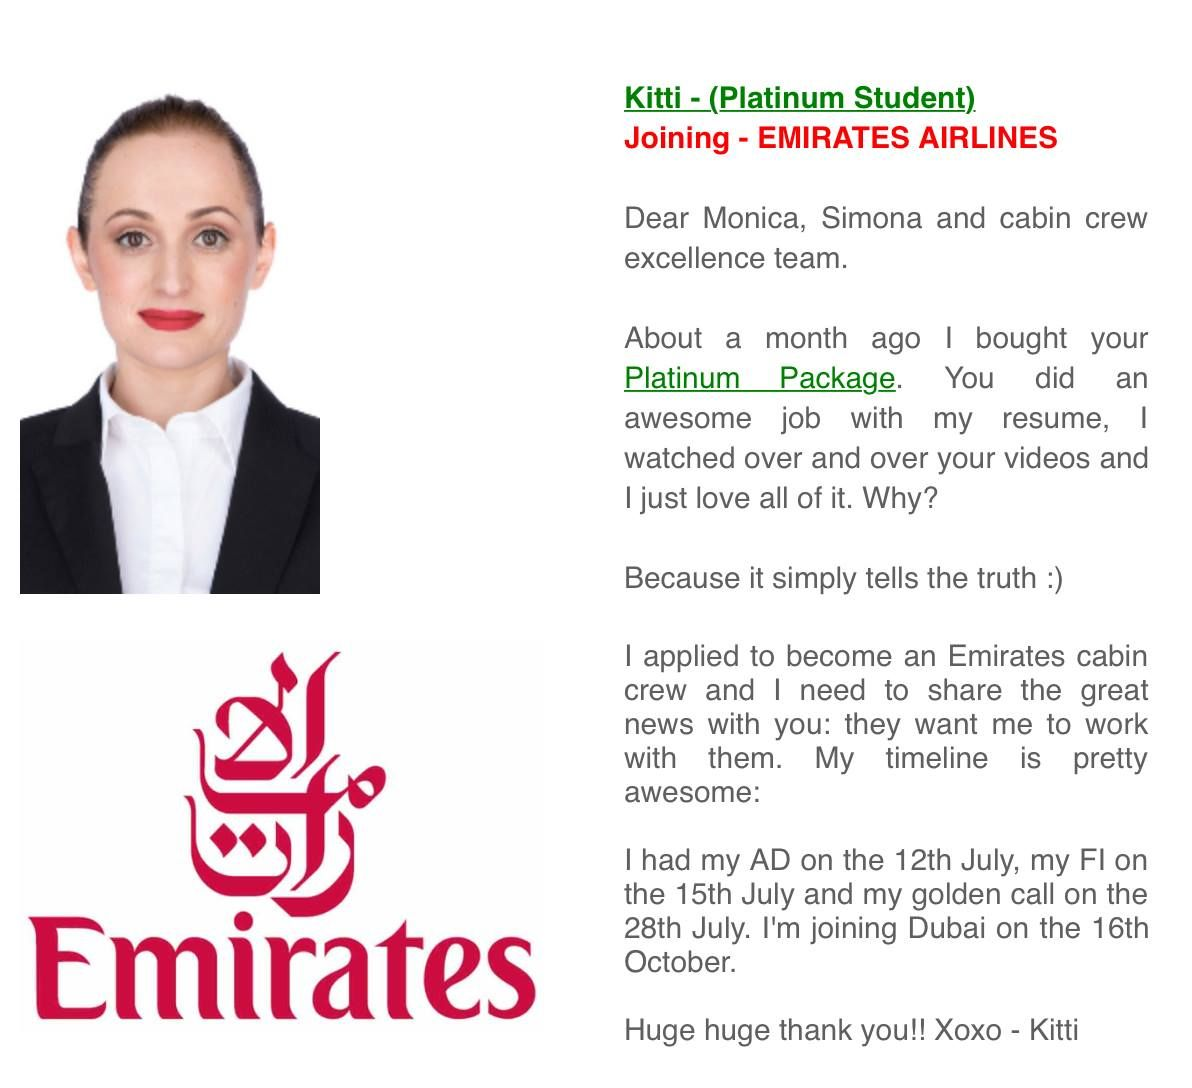 kitti is one of our platinum students and now a future